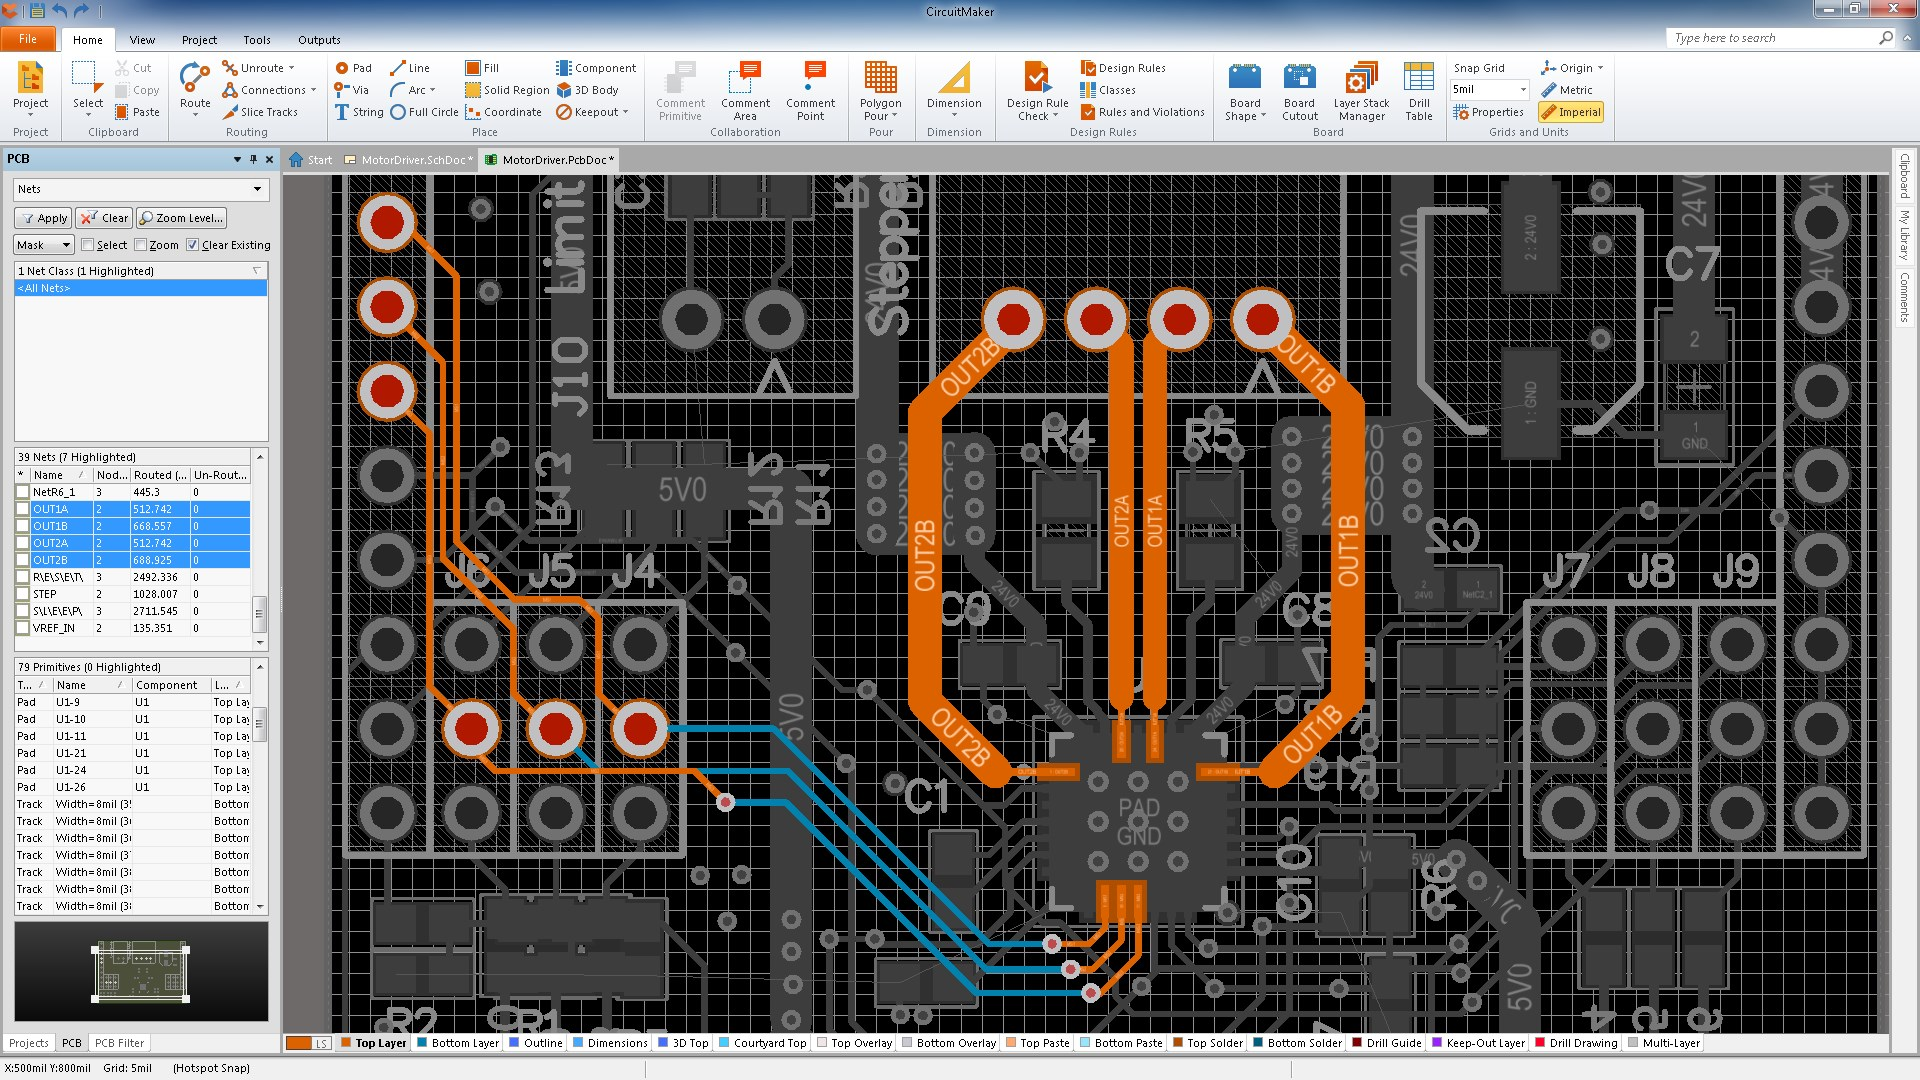 Outstanding Pcb Tool Pattern - Electrical and Wiring Diagram Ideas ...